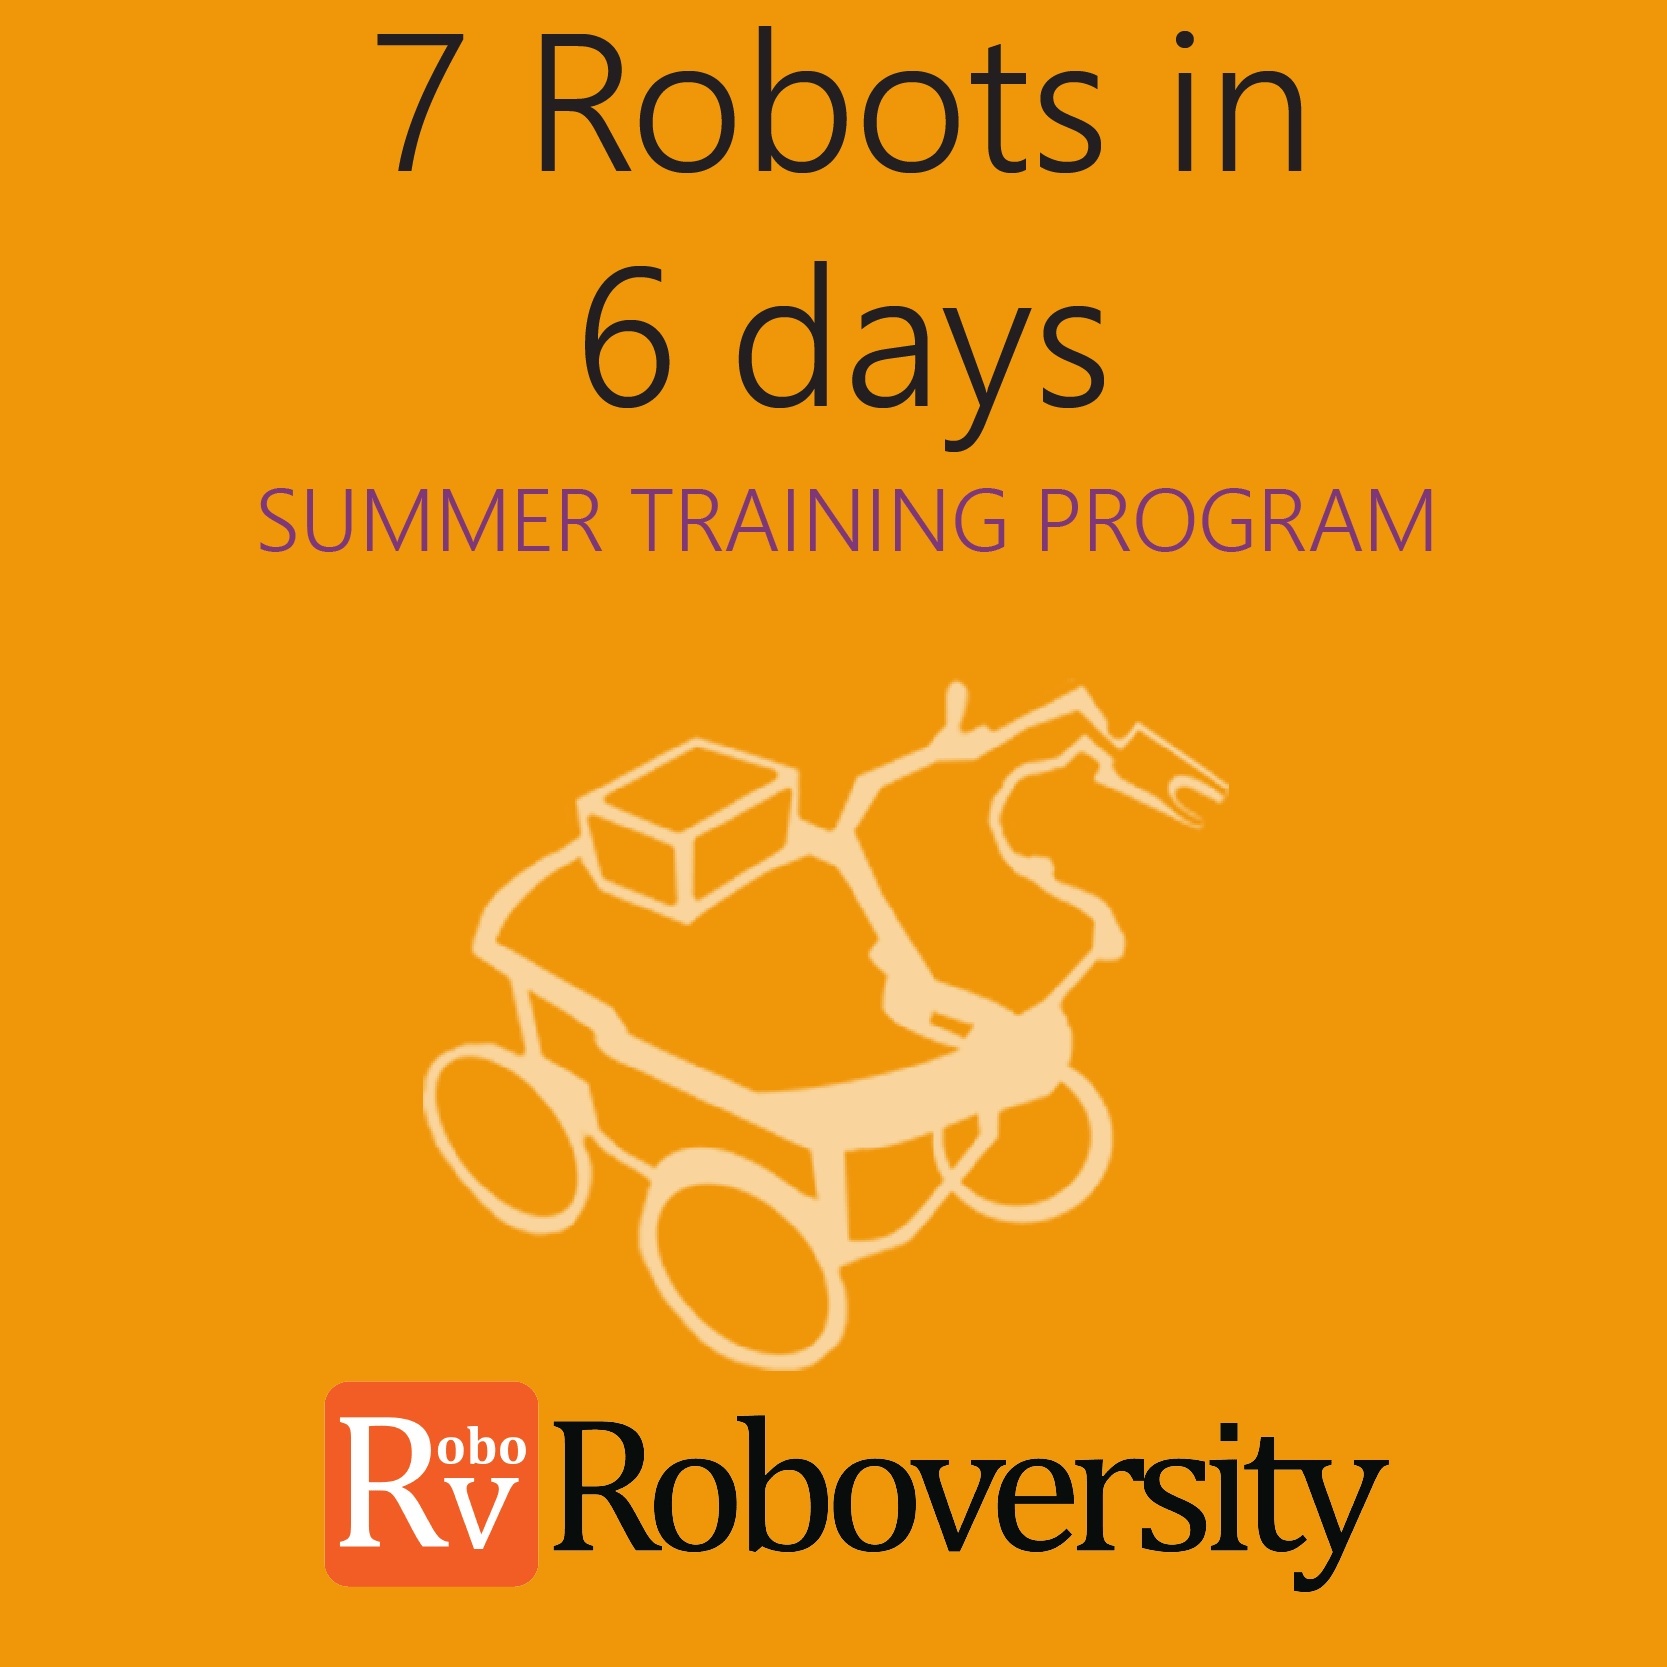 Summer Training Program on 7 Robots in 6 Days